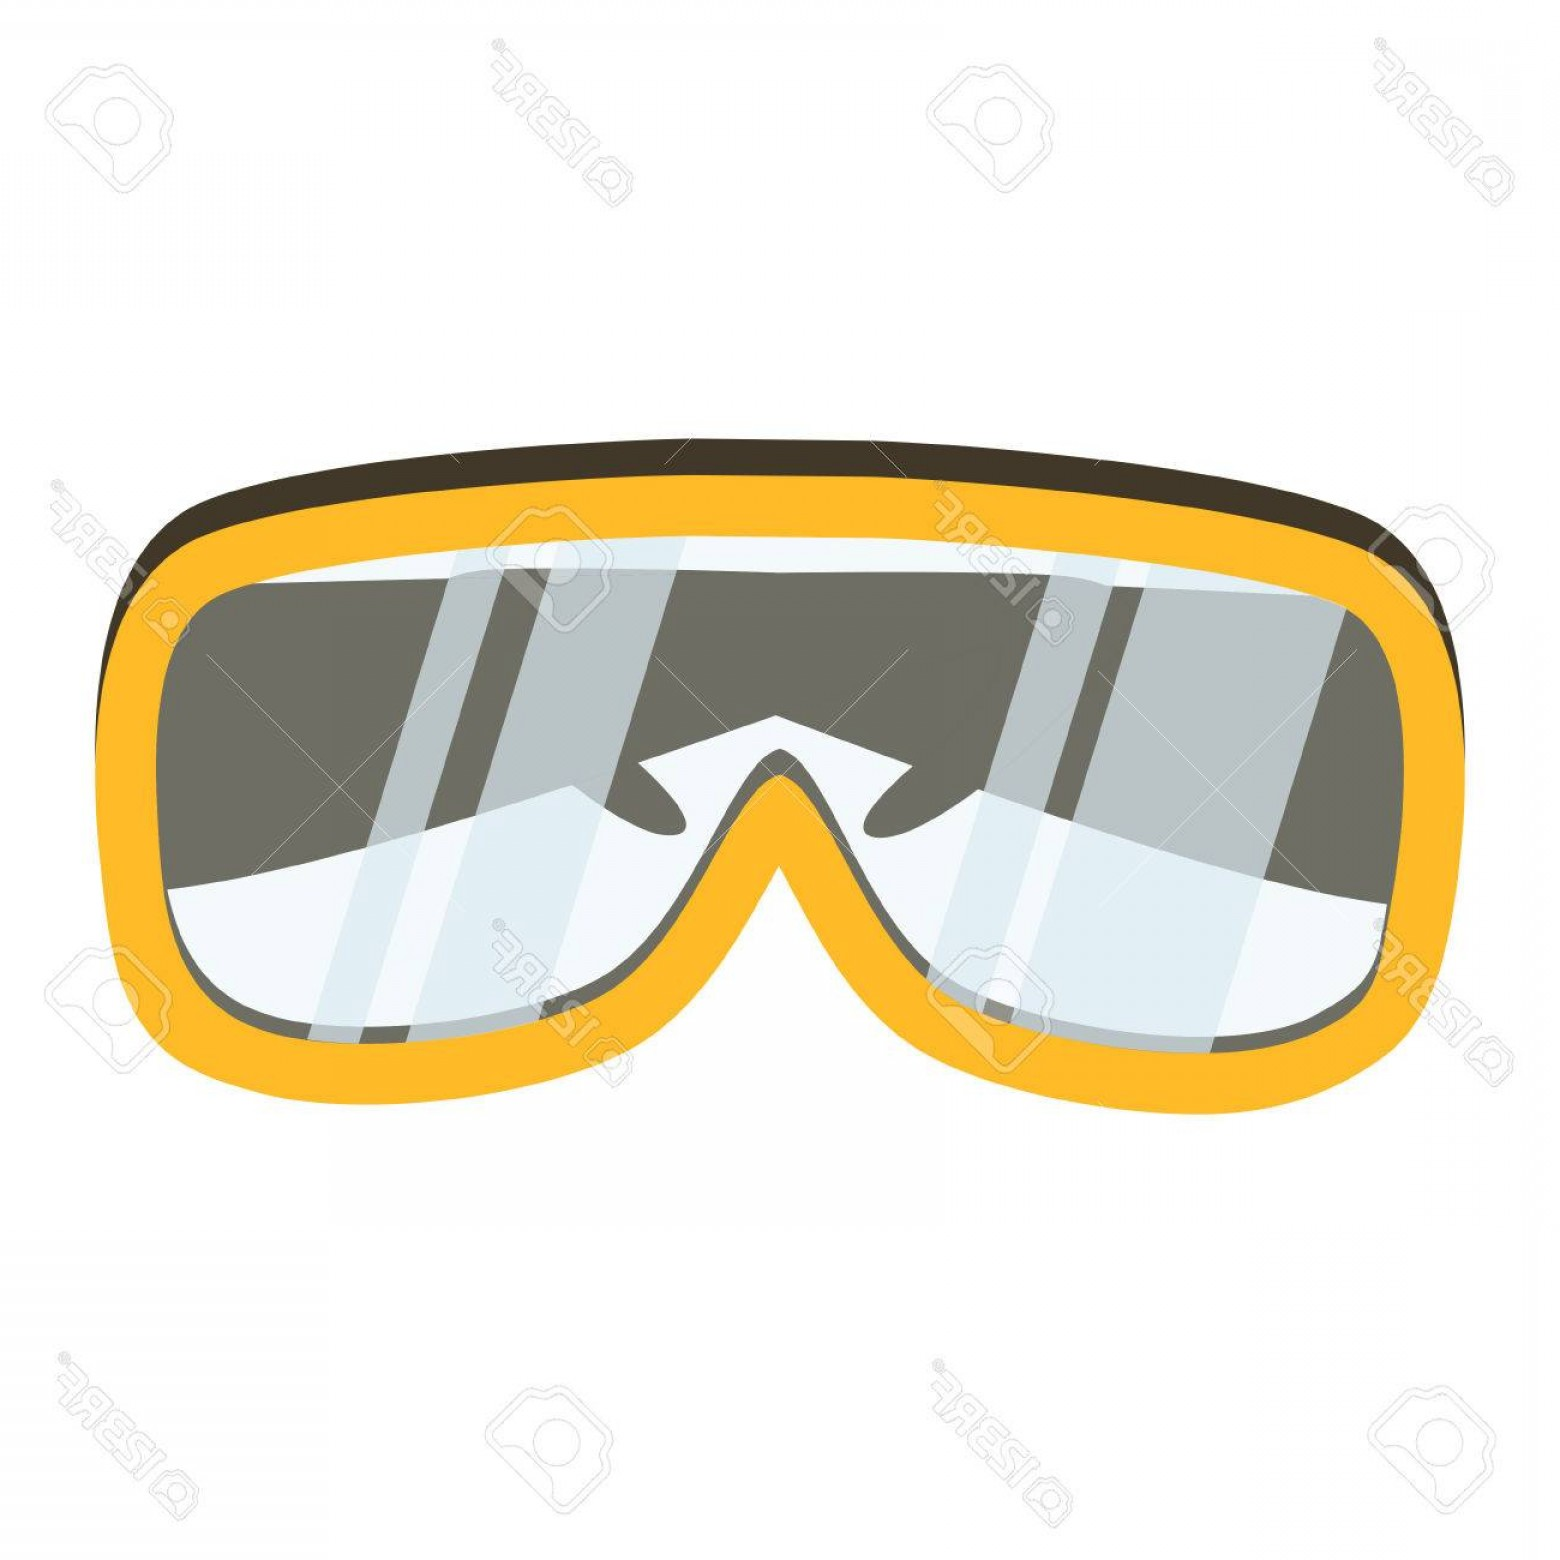 Construction Safety Goggles Vector: Photostock Vector Safety Glasses Tool Icon Industrial Or Household Instrument For General Or Utility Purposes Protecti